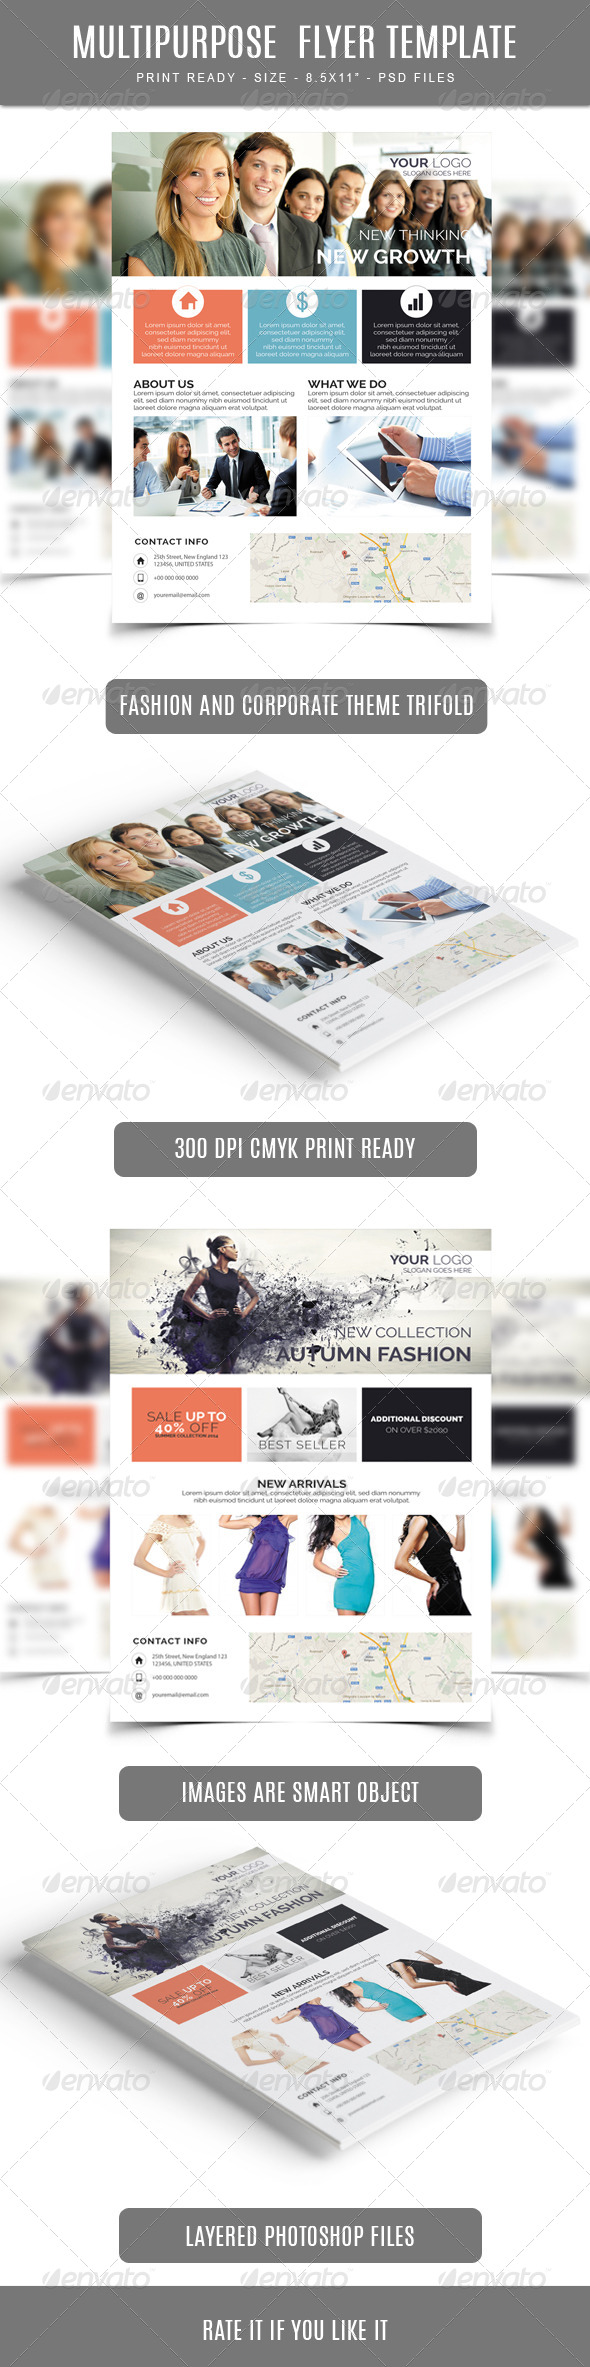 GraphicRiver Multipurpose Flyer Template 7764805